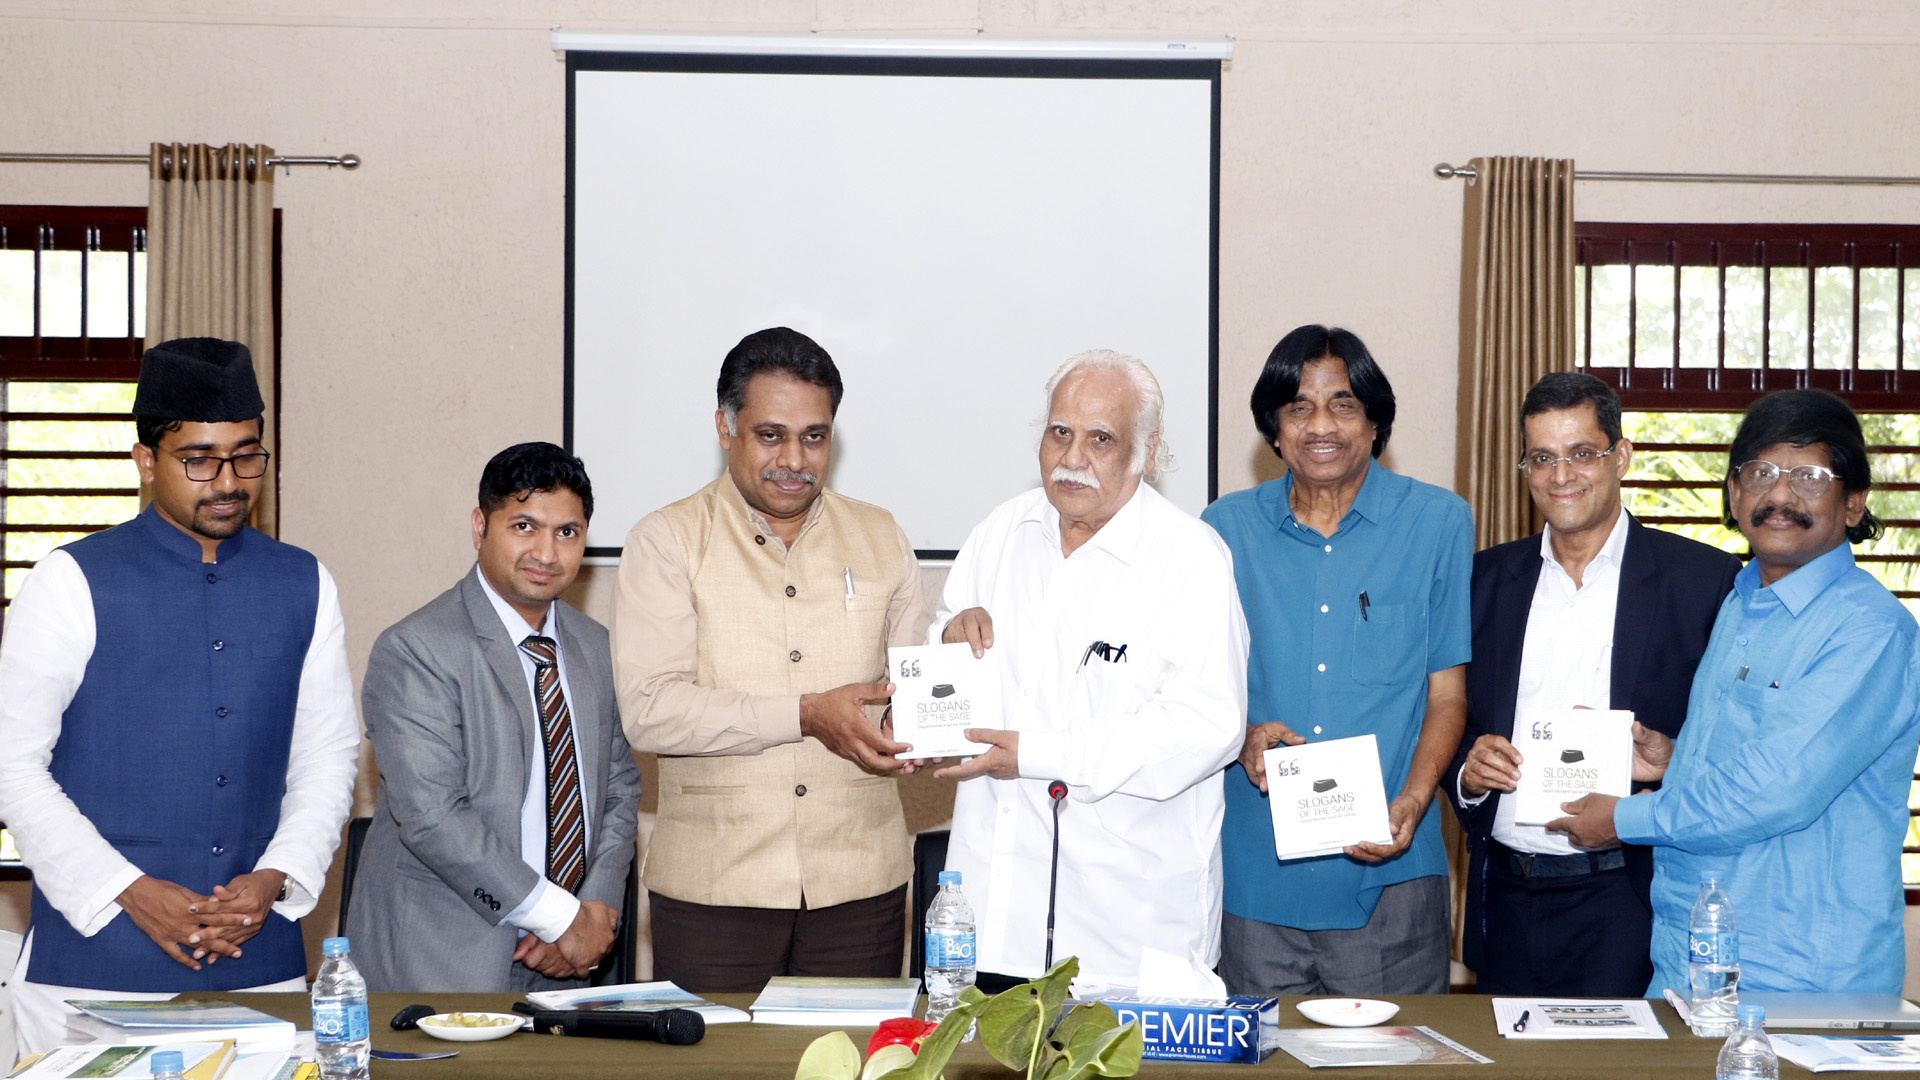 Dr. E Balagurusamy (Former Vice Chancellor, Anna University, Chennai, and President of the Coimbatore Academy of Sciences), Dr. K K N Kurup (Renowned historian and former Vice Chancellor, Calicut_University), Dr. M Dasan (Former Registrar, Kannur University) and Dr. Saji Gopinath (CEO, Kerala Startup Mission, Govt of Kerala) and Dr. Alungal Mohammed (Chairman, Al Abeer Group)